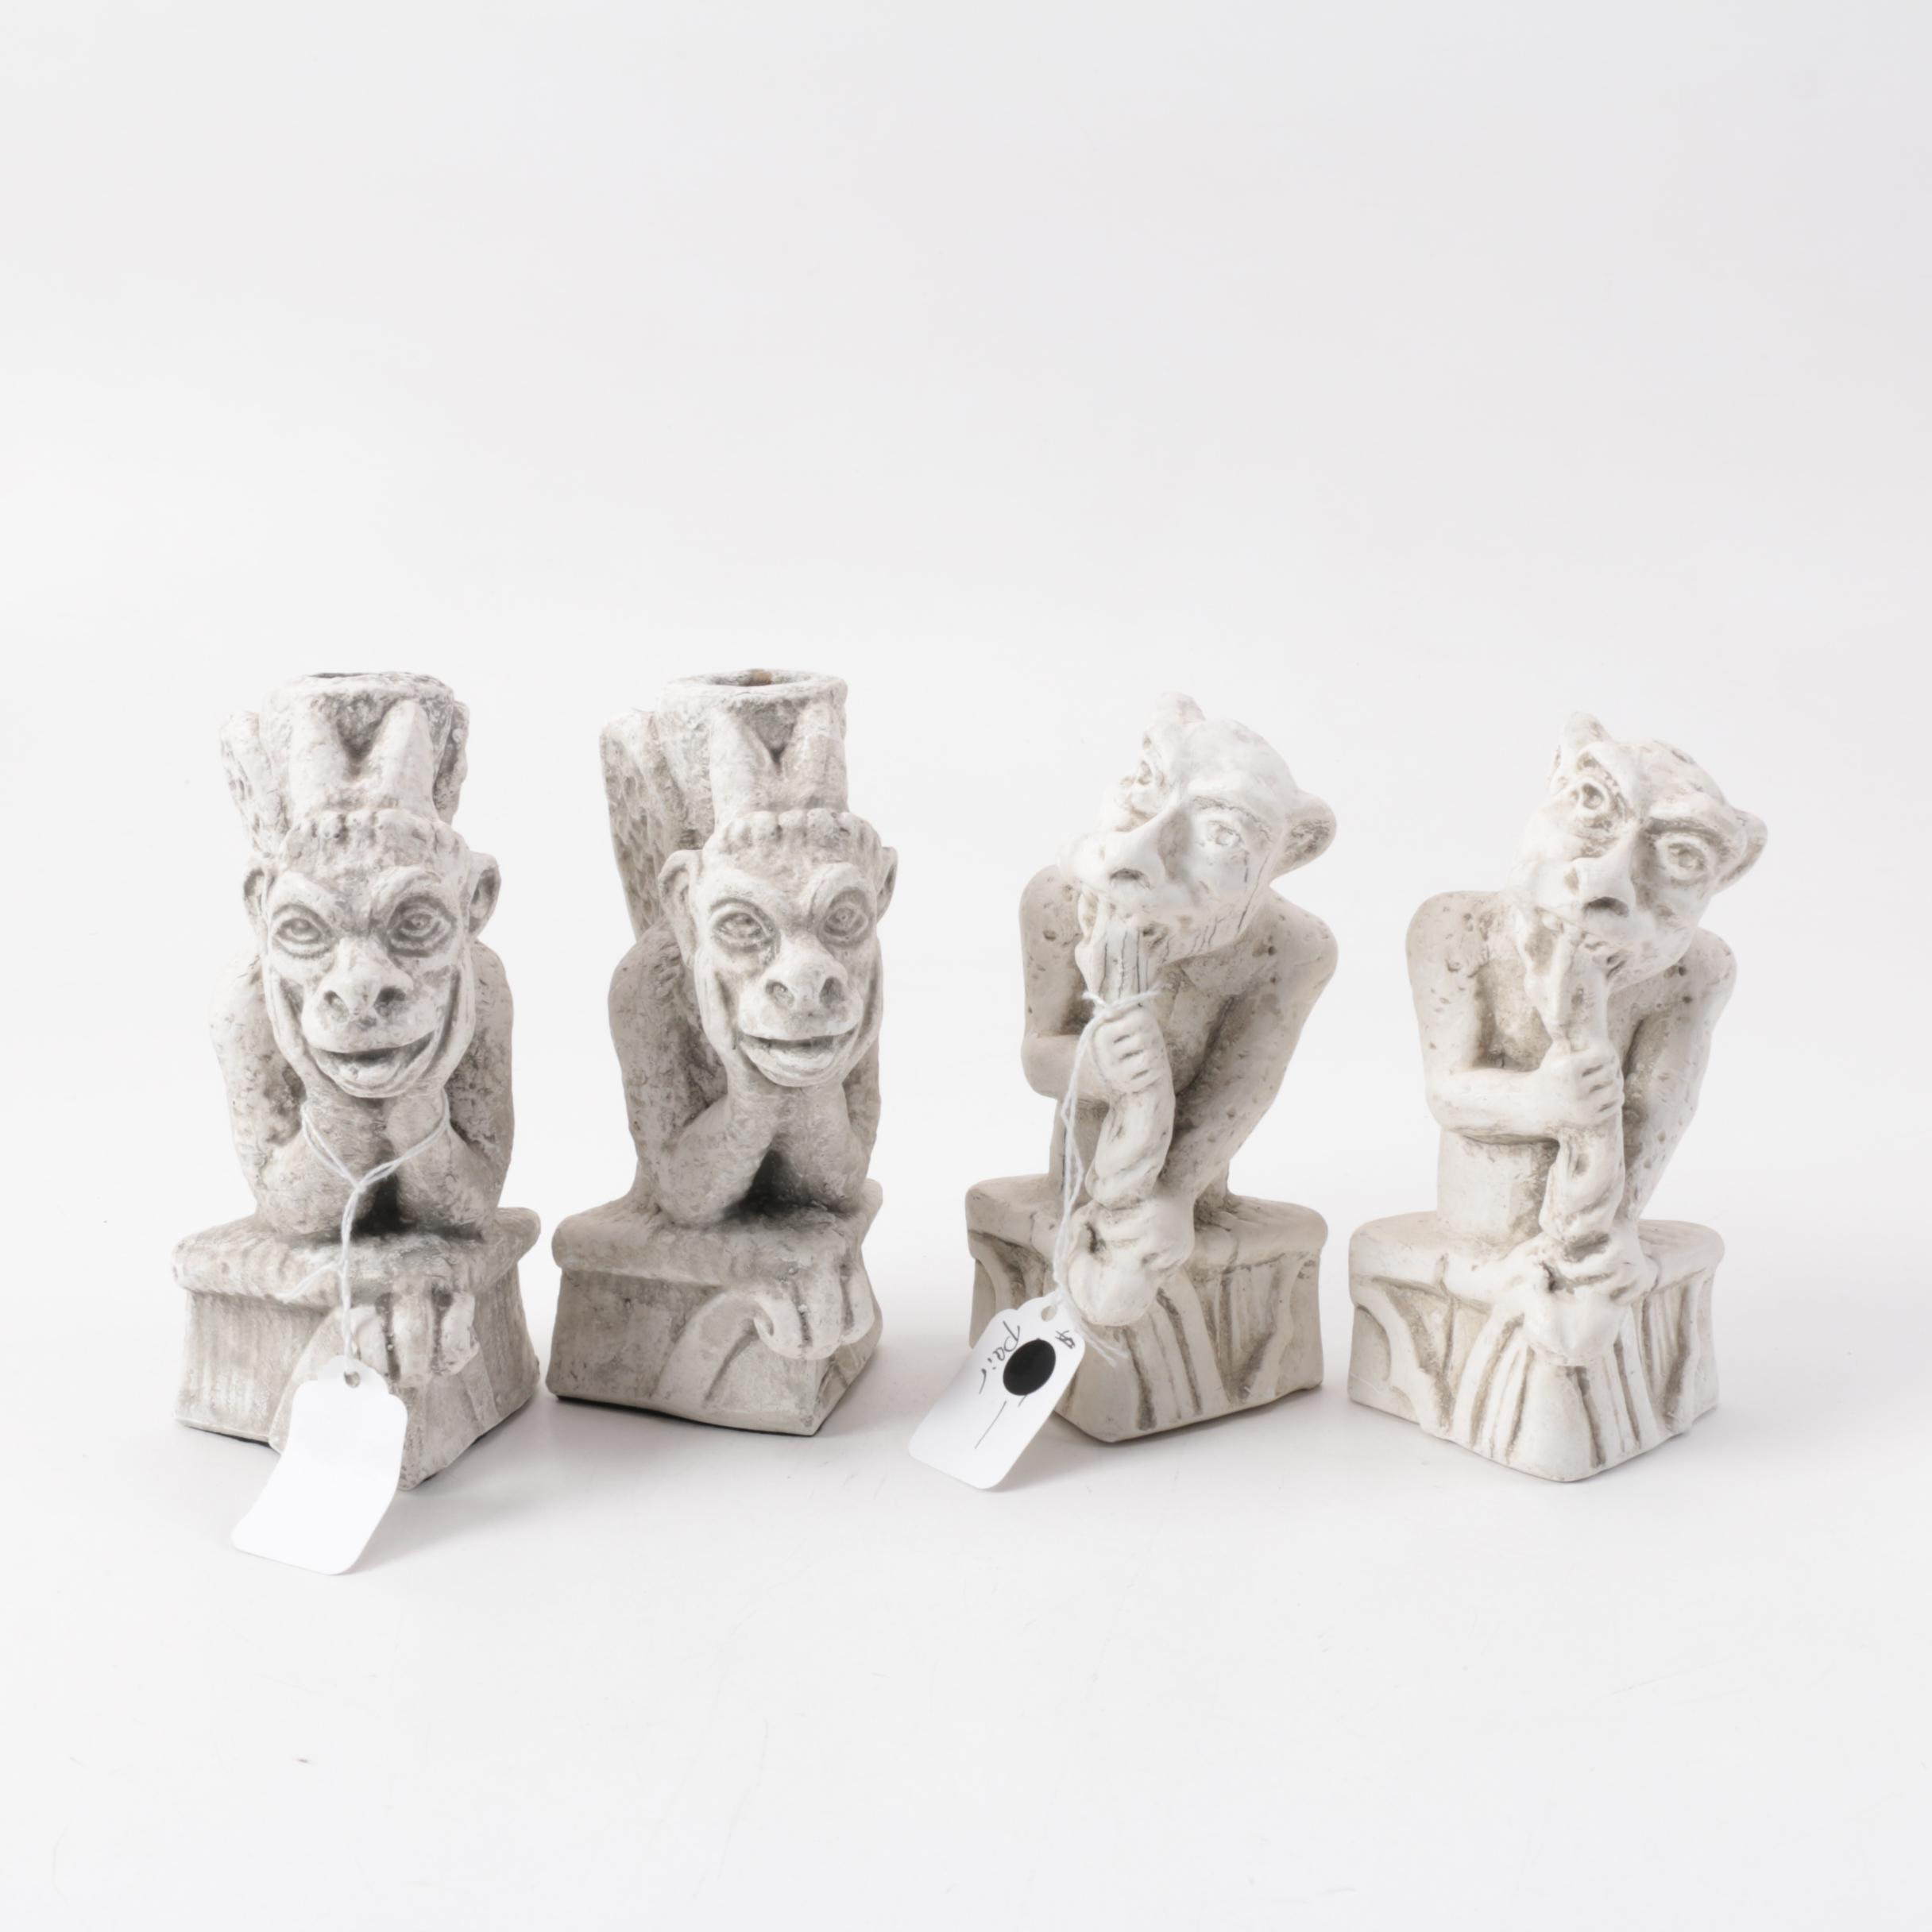 Reproduction Notre Dame Gargoyle Figurines and Candle Holders